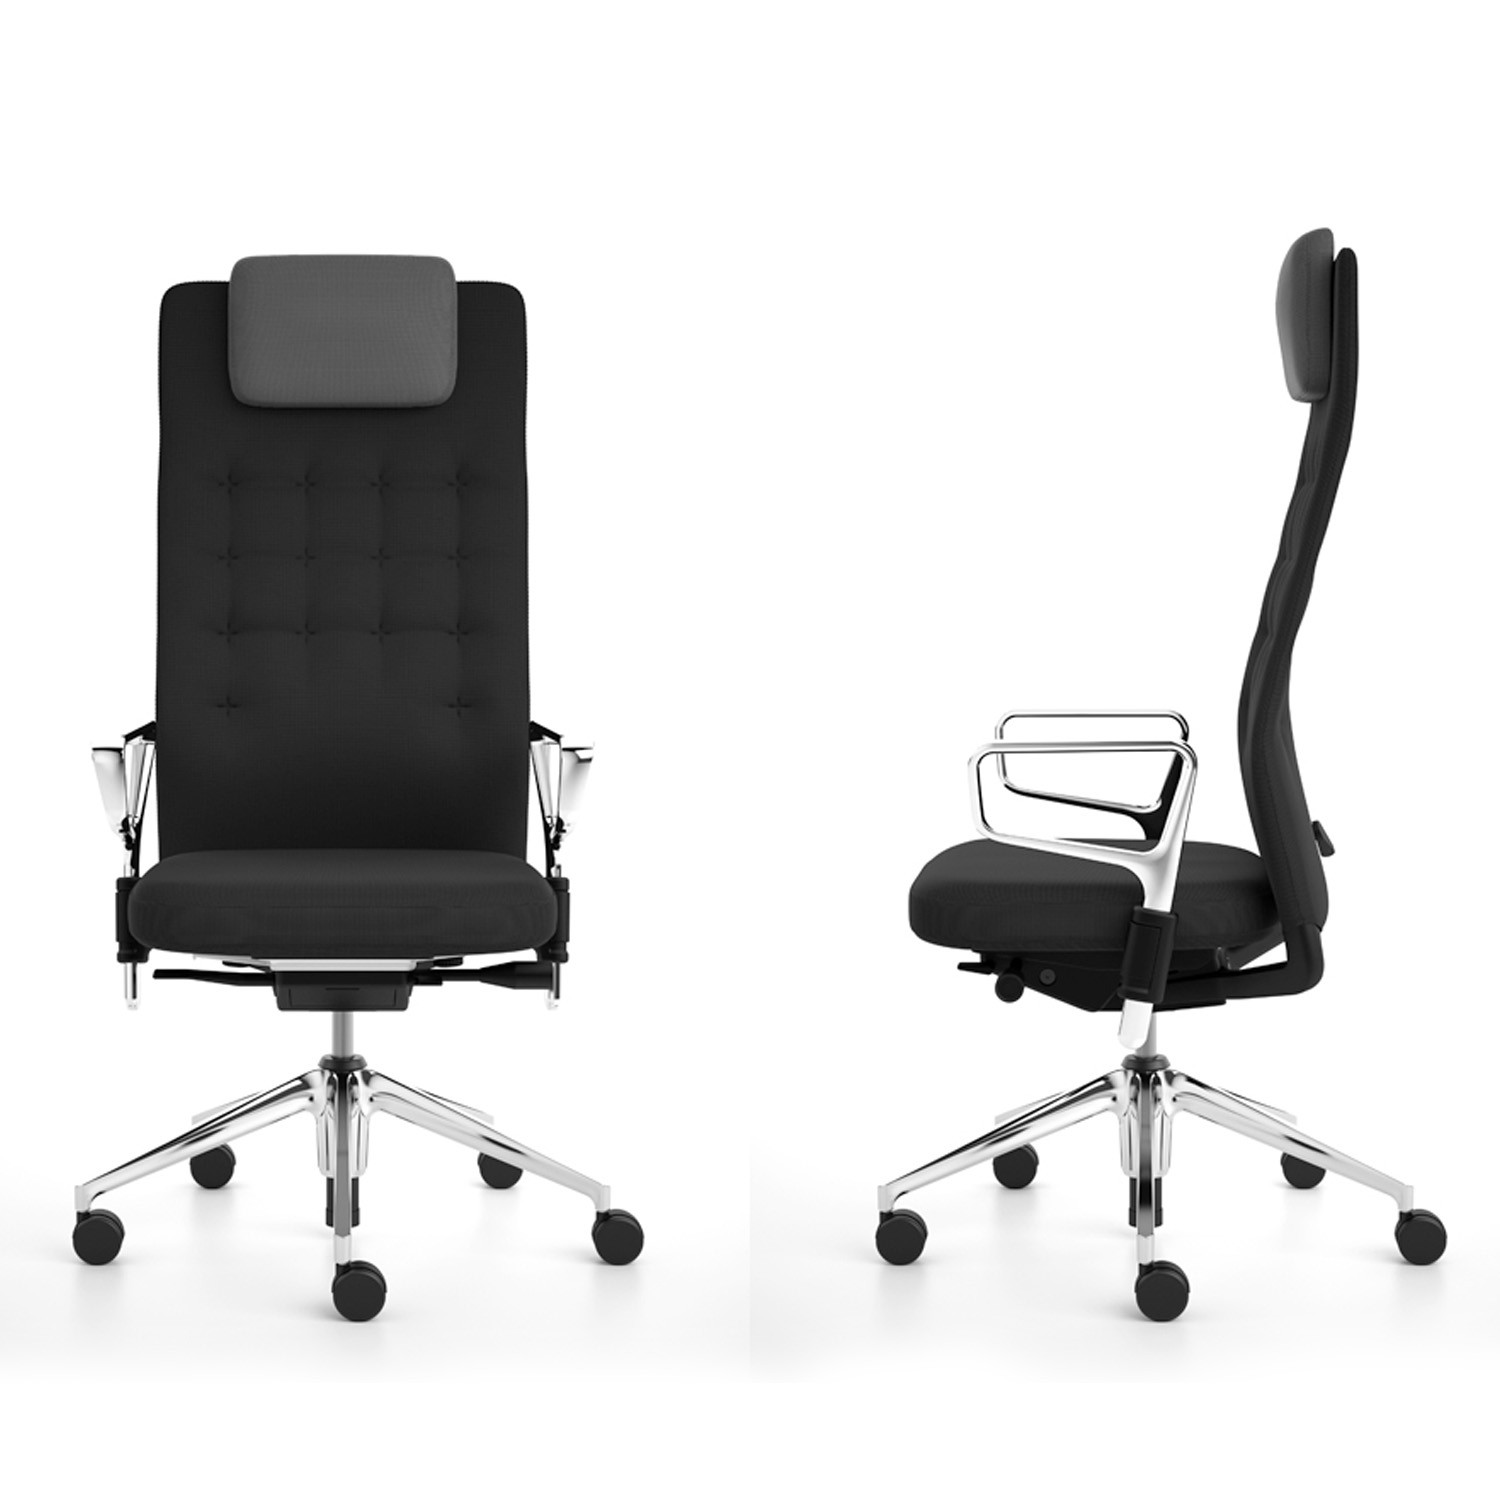 ID Trim L Executive Chairs